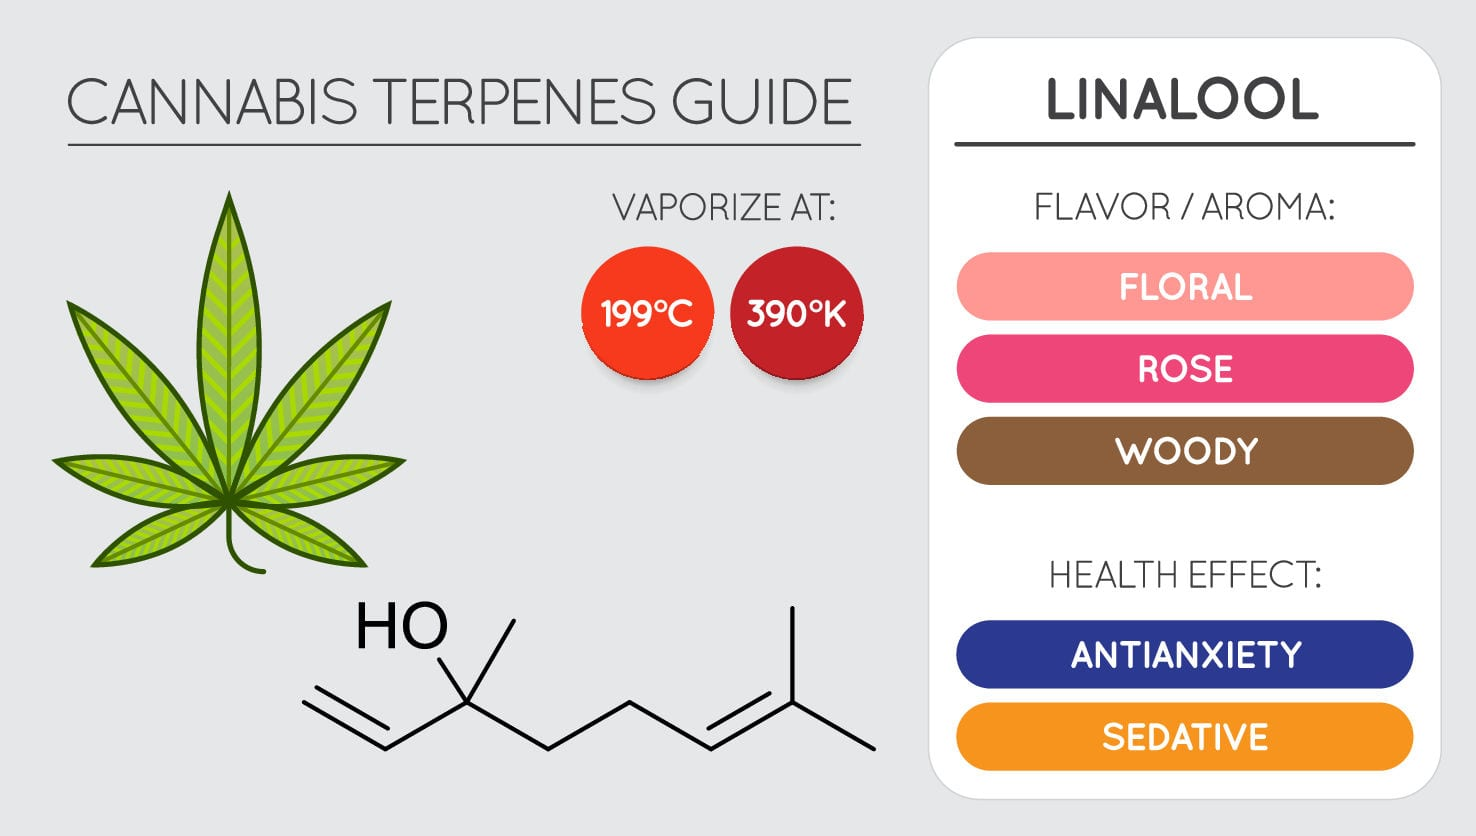 cannabis terpenes chart of linalool, showing best vaporisation temperatures, flavour profile and health benefits,